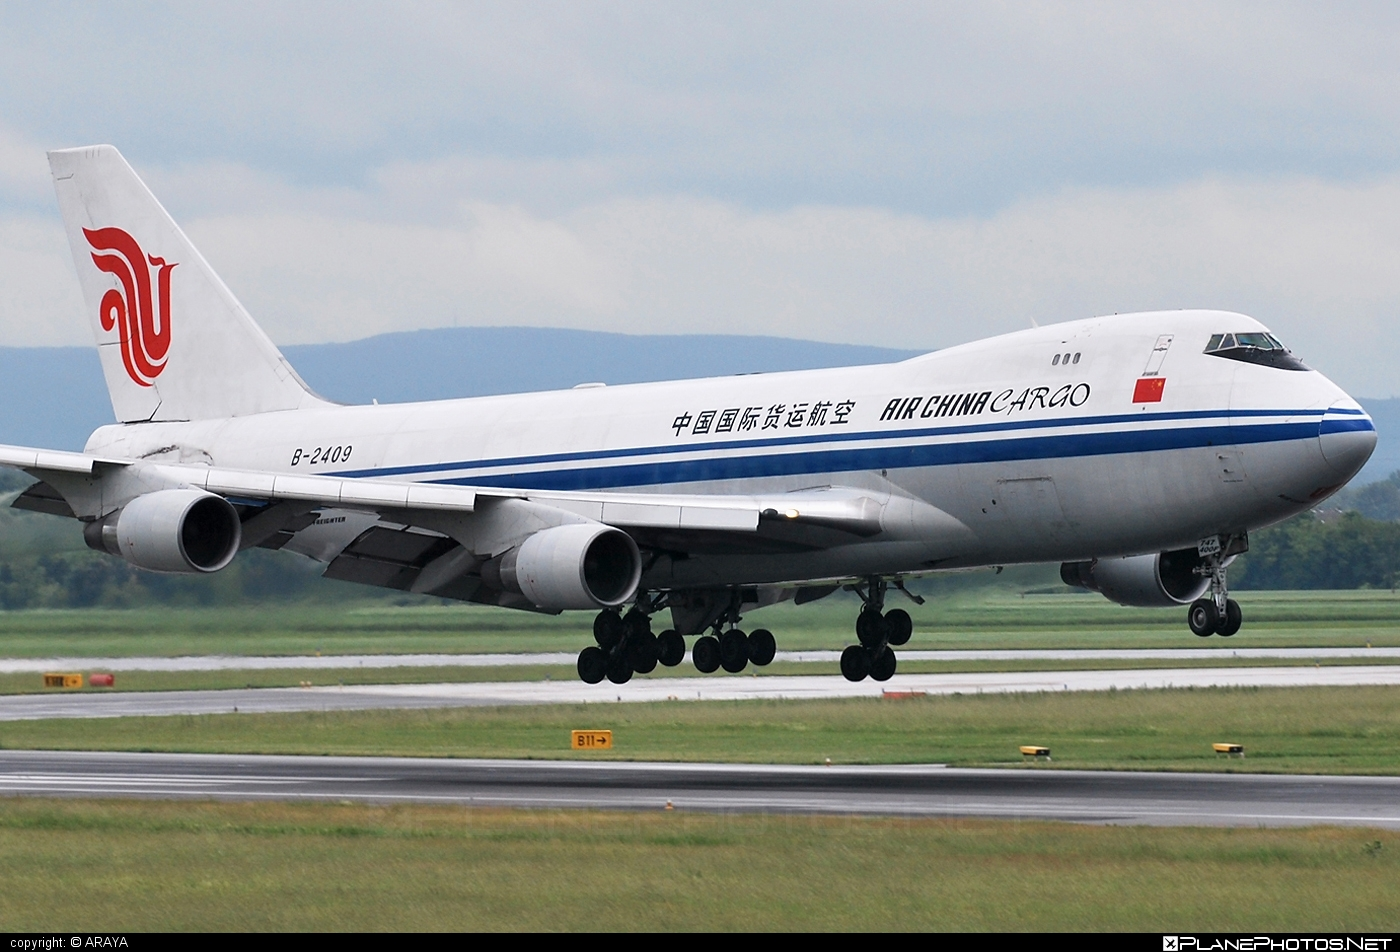 Boeing 747-400F - B-2409 operated by Air China Cargo #airchina #airchinacargo #b747 #boeing #boeing747 #jumbo